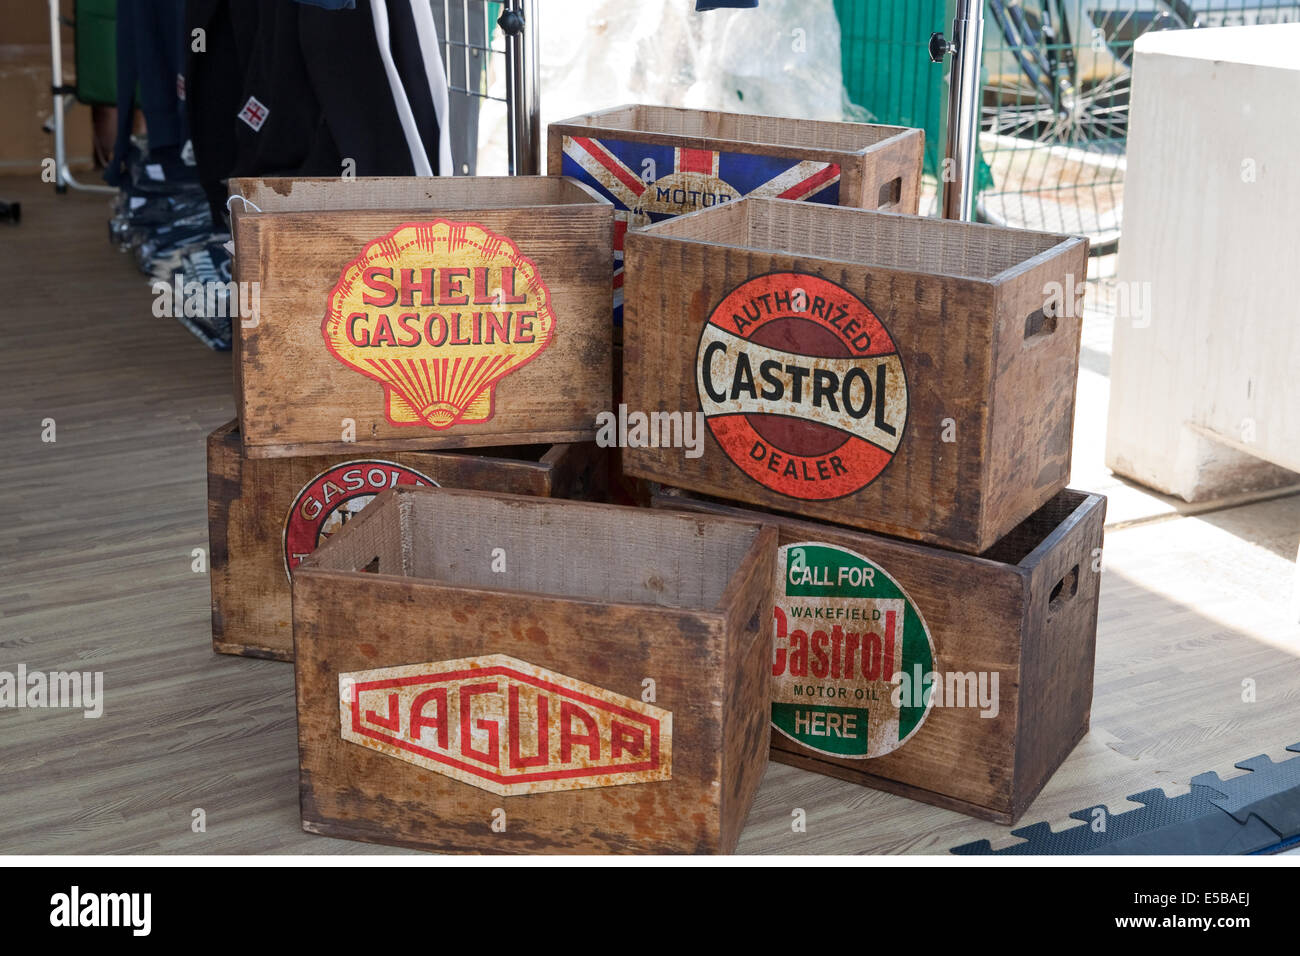 Towcesterwiltshire Uk 25th July 2014 Old Wooden Boxes For Sale